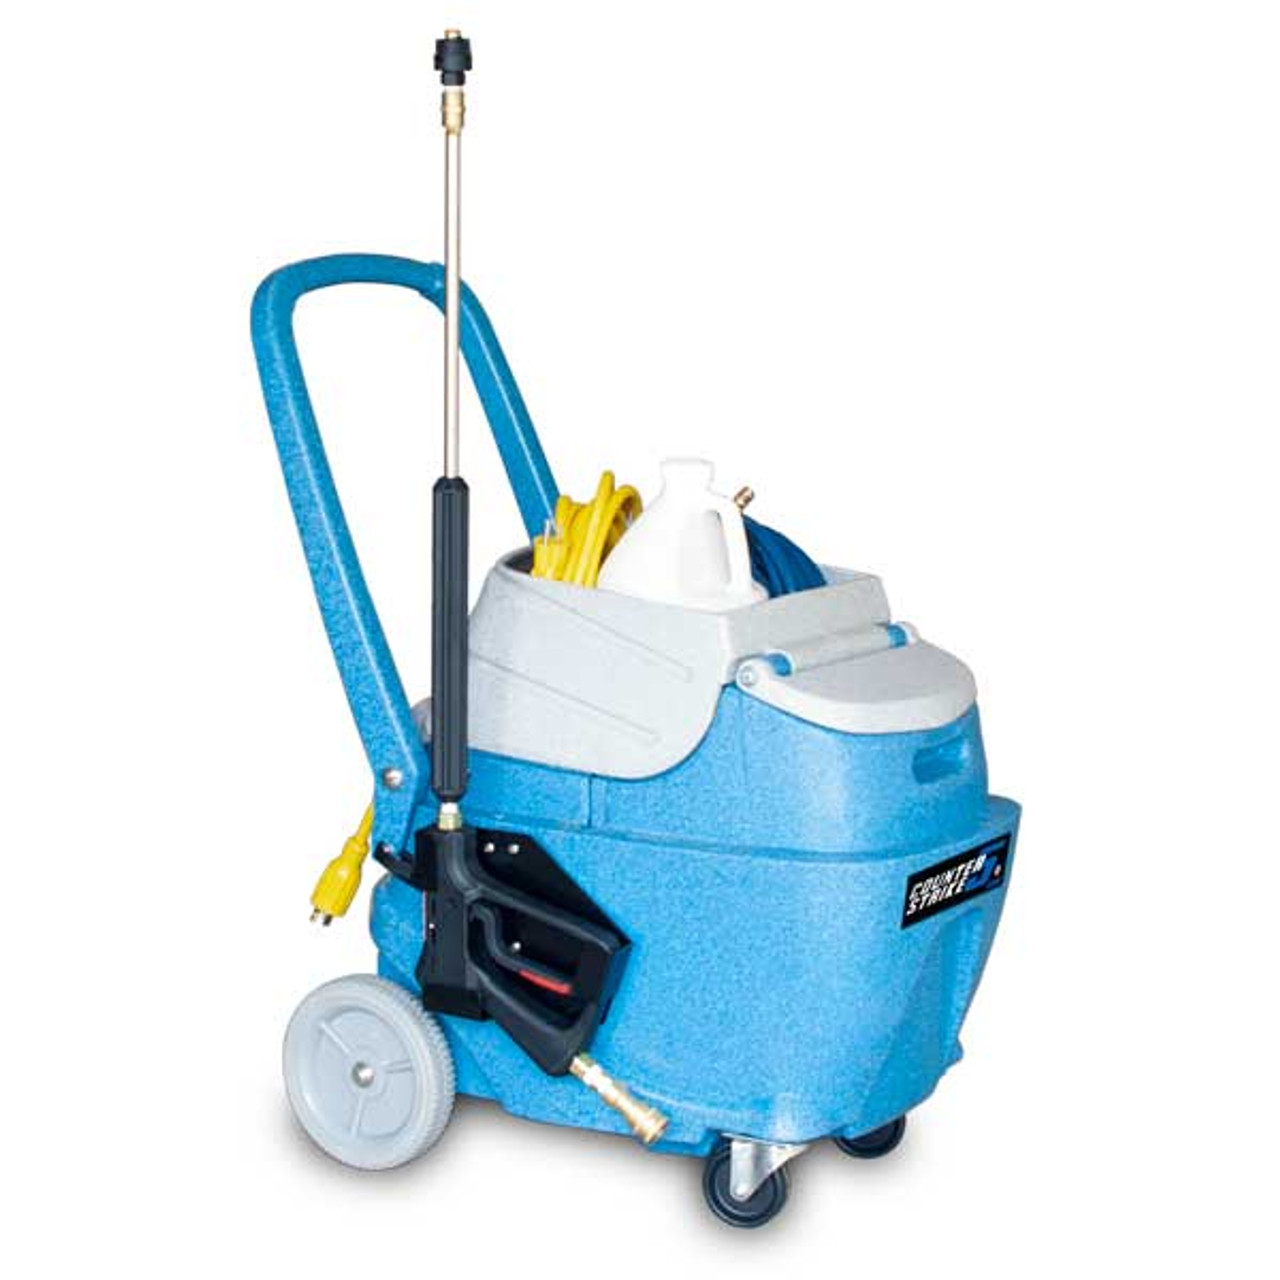 Counter Strike provides the operator with a chemical application gun that quickly applies disinfecting chemical onto surfaces in a fine mist for optimum coverage.